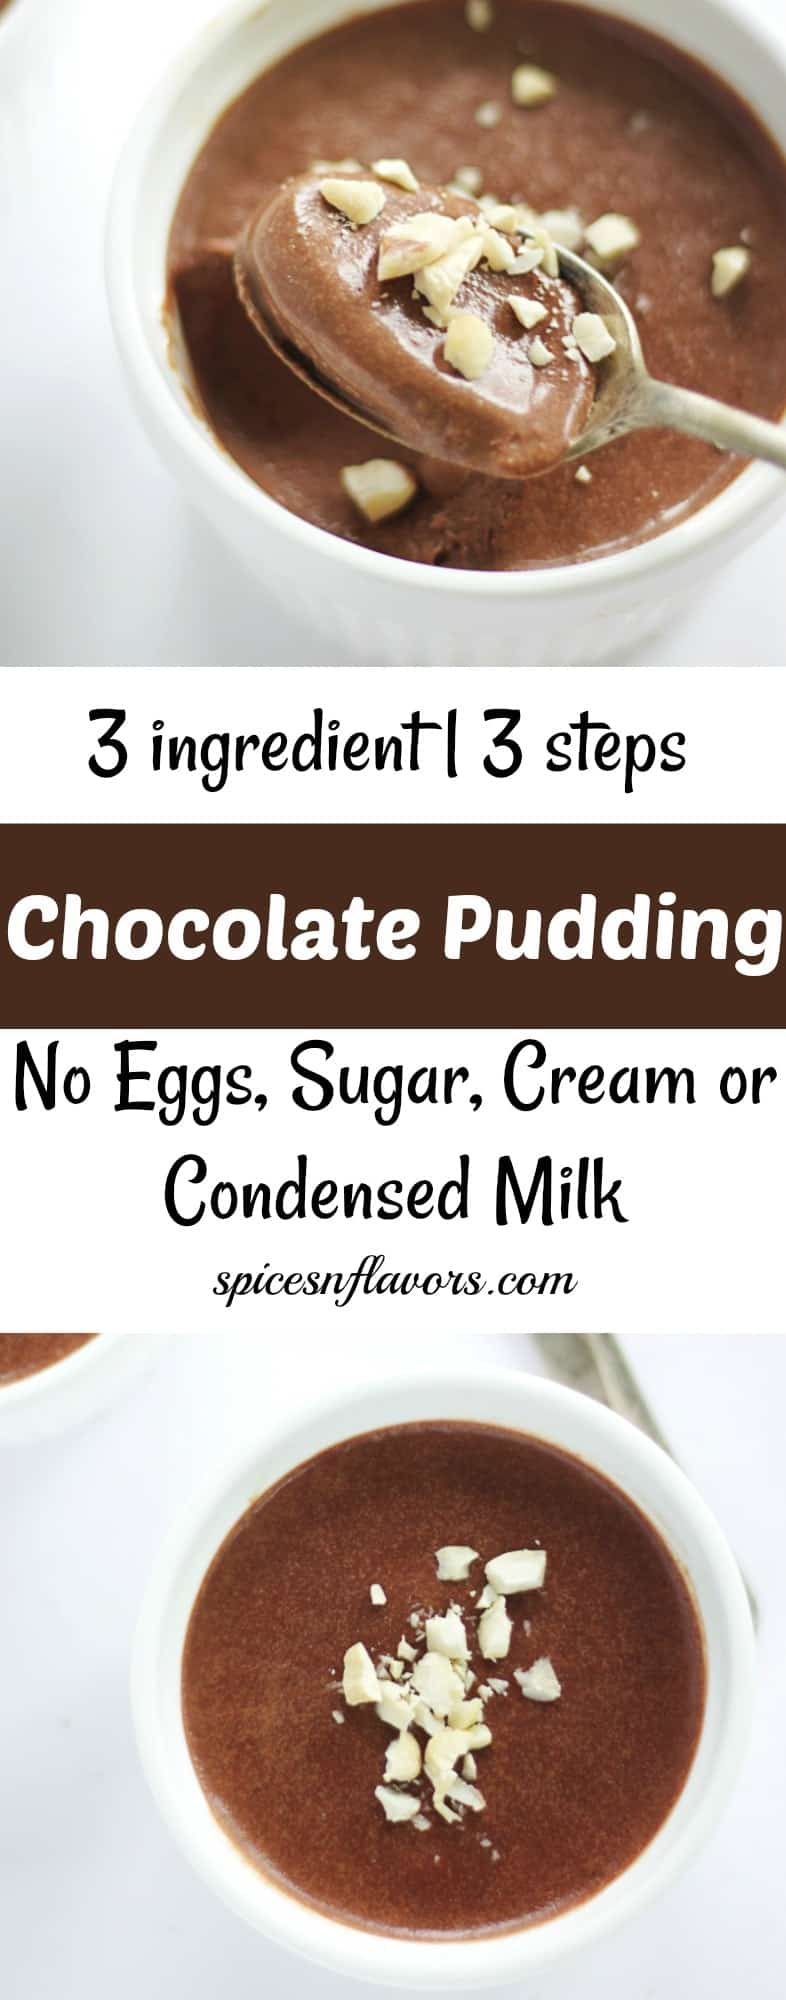 chocolate pudding 3 ingredient chocolate pot chocolate mousse easy pudding no cook no bake recipe food photography creamy chocolate pudding recipe